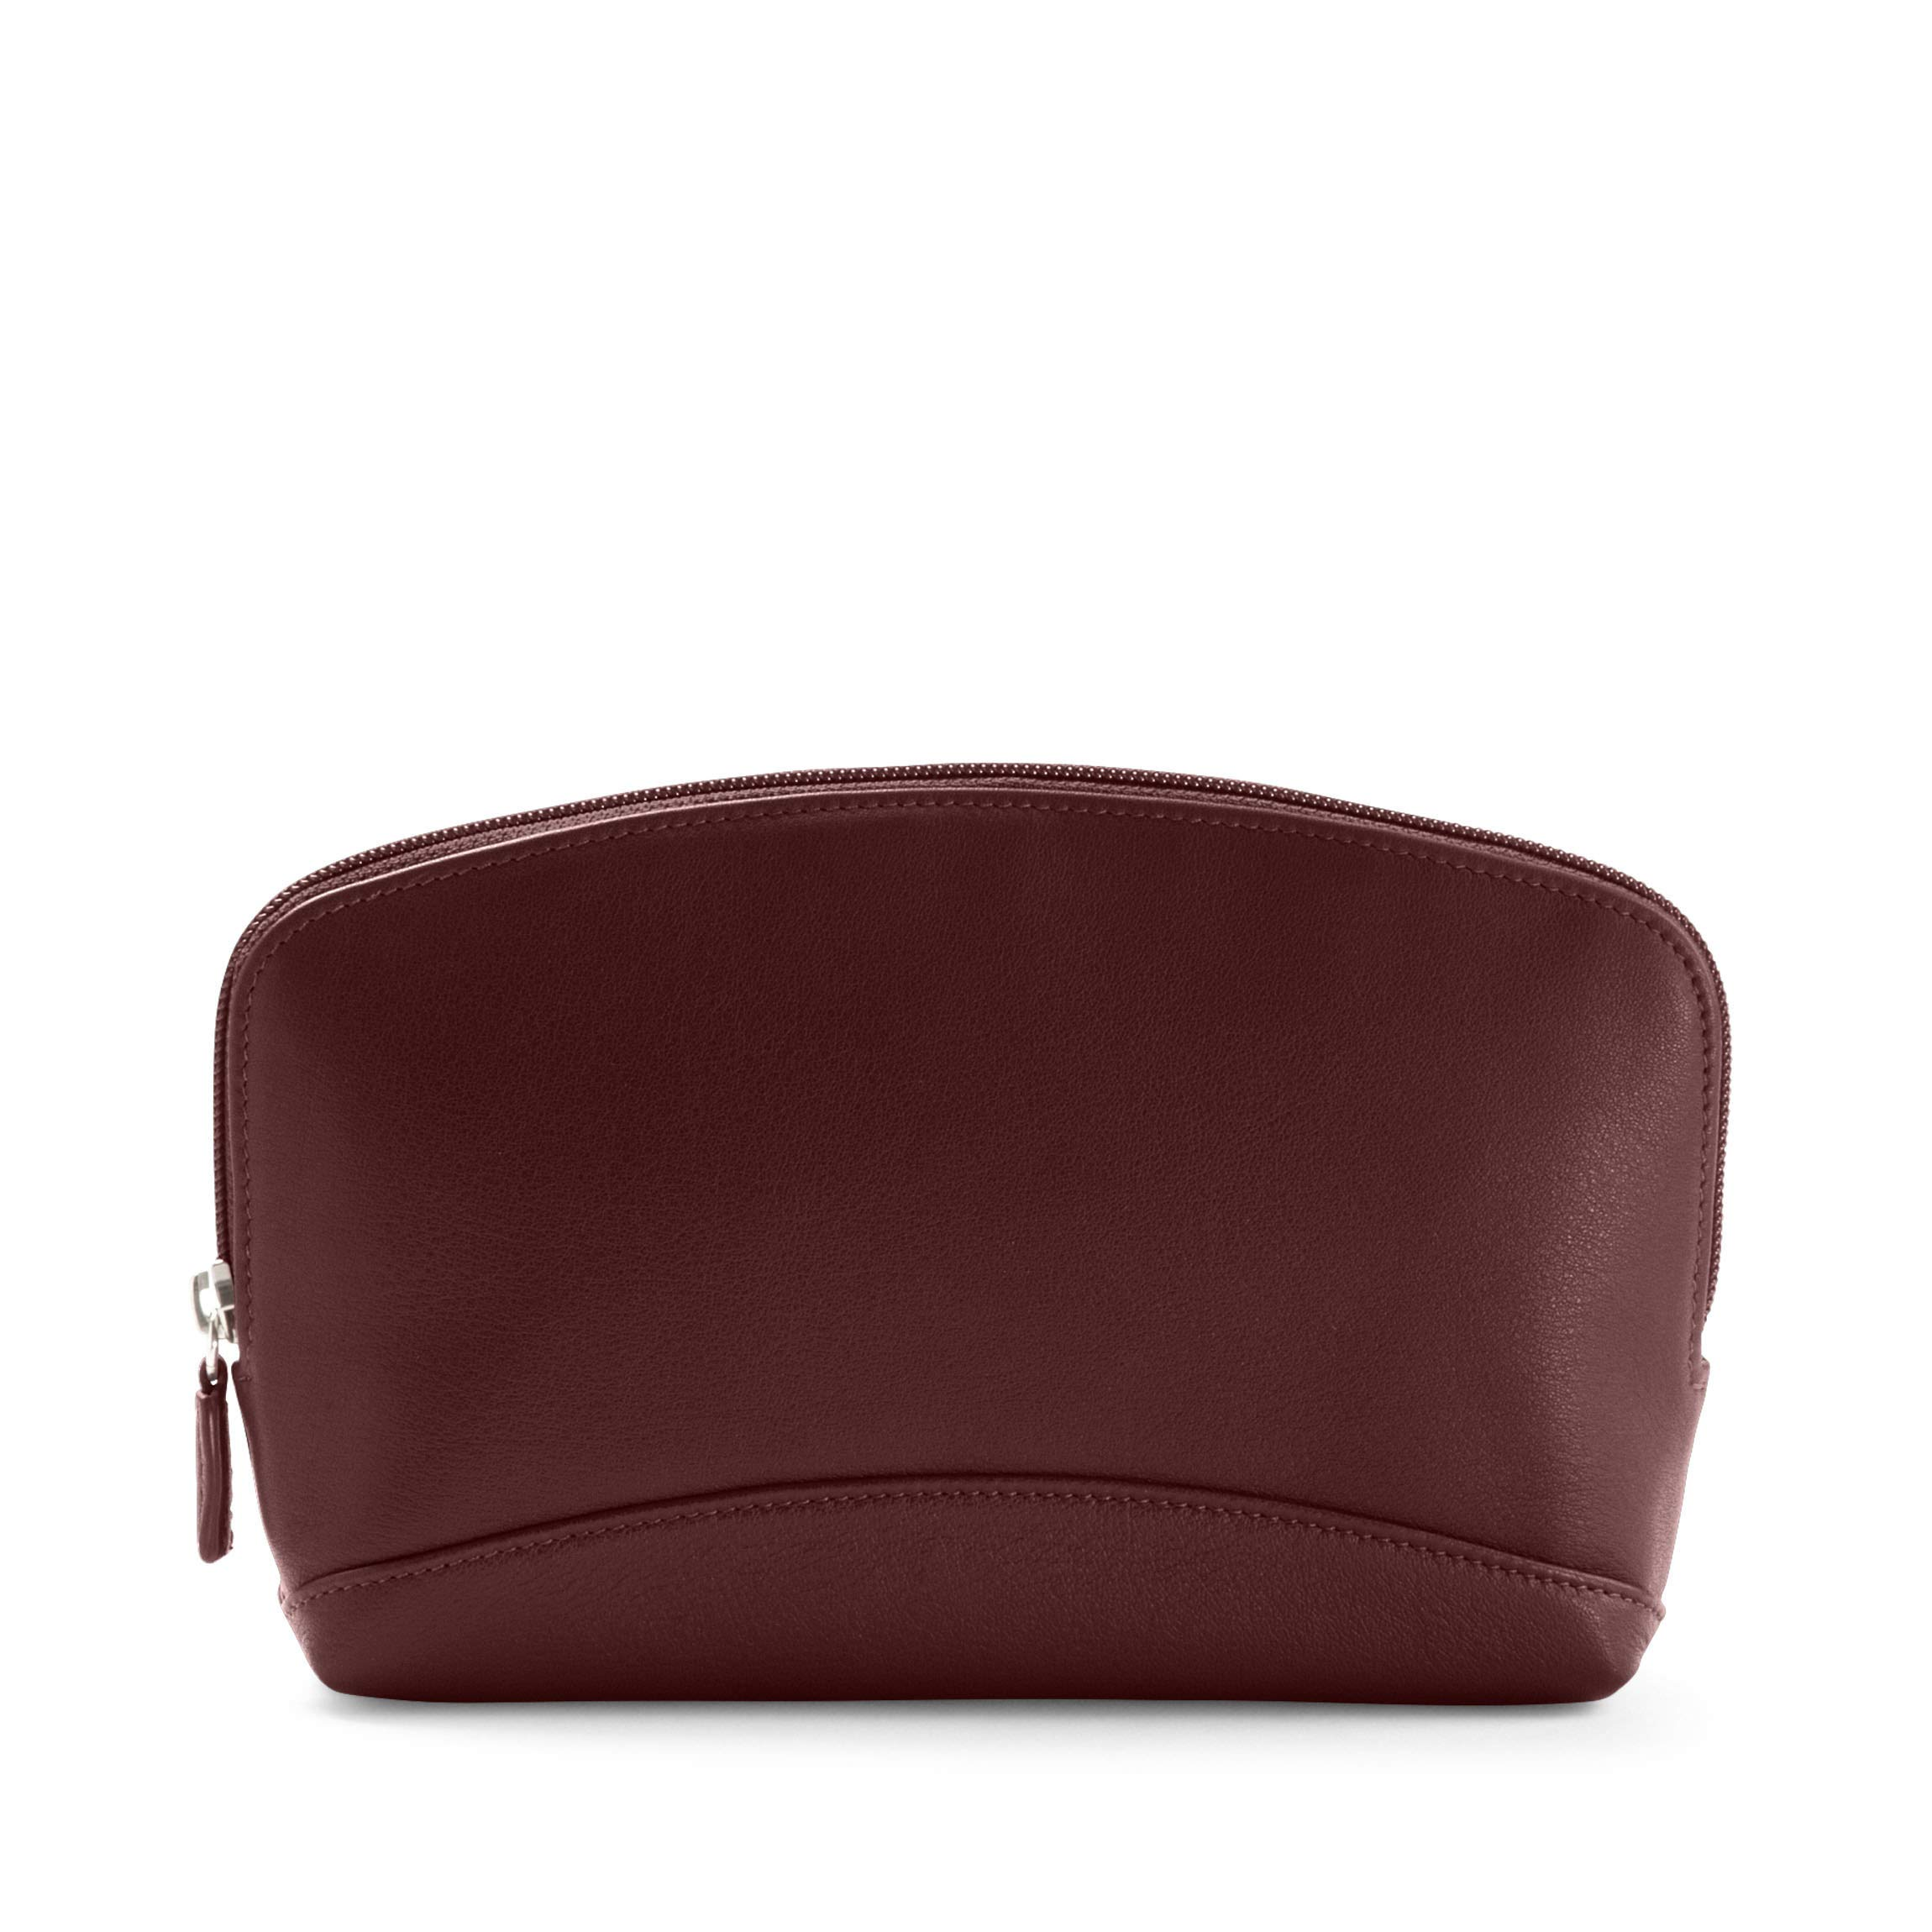 Large Cosmetic Bag - Full Grain Leather Leather - Bordeaux (Red)